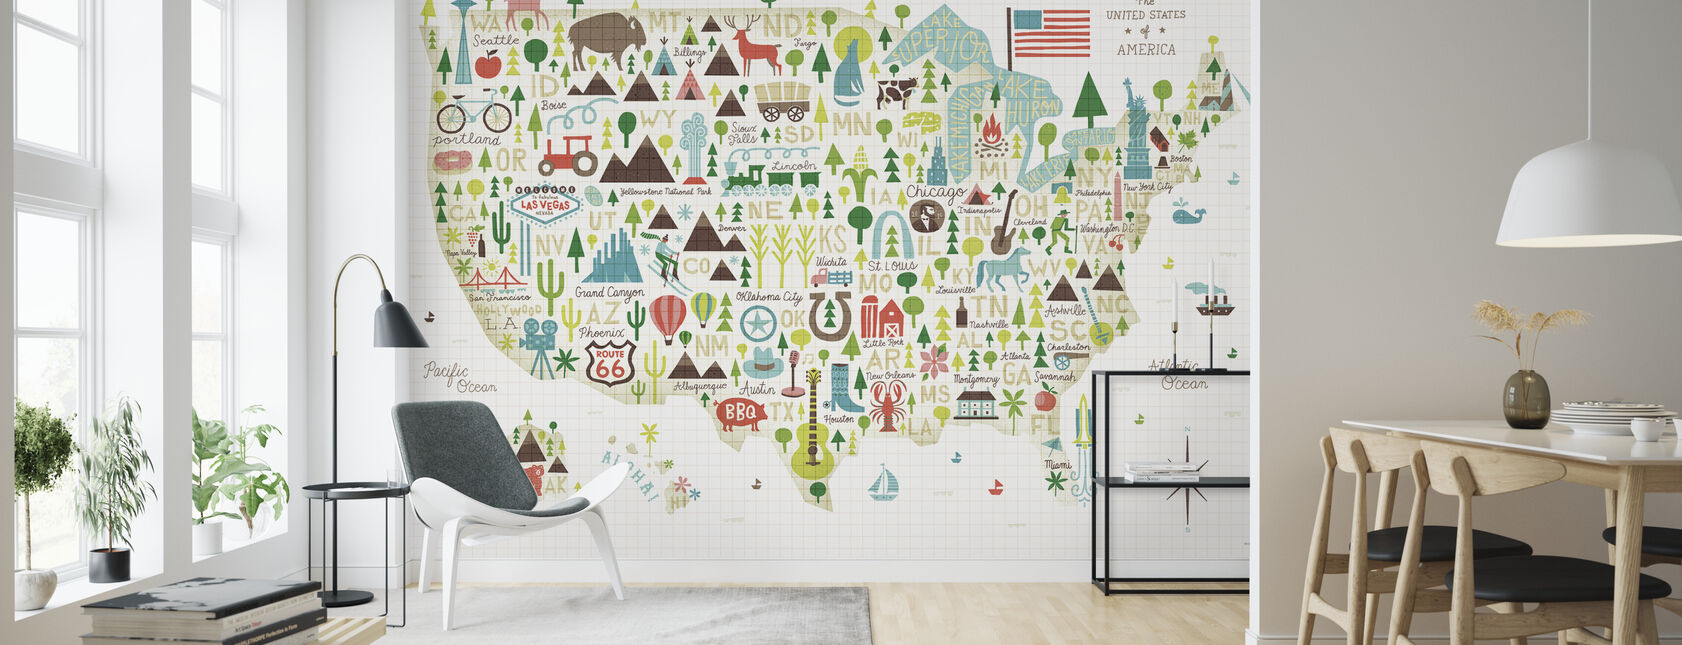 Illustrated USA - Wallpaper - Living Room